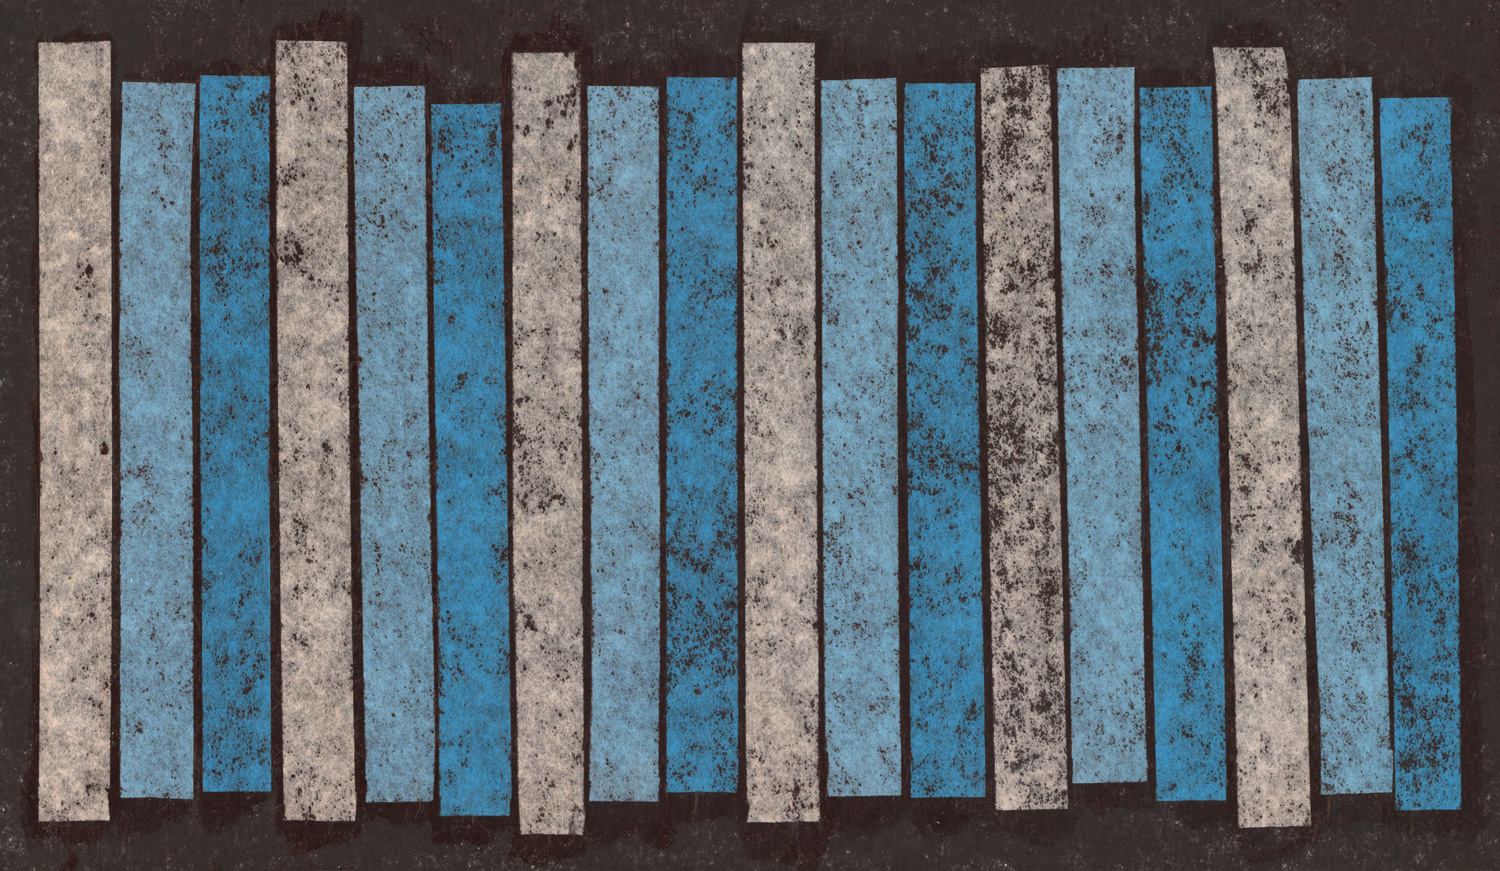 Abstract illustration of vertical stripes in repeating colors on a black background.